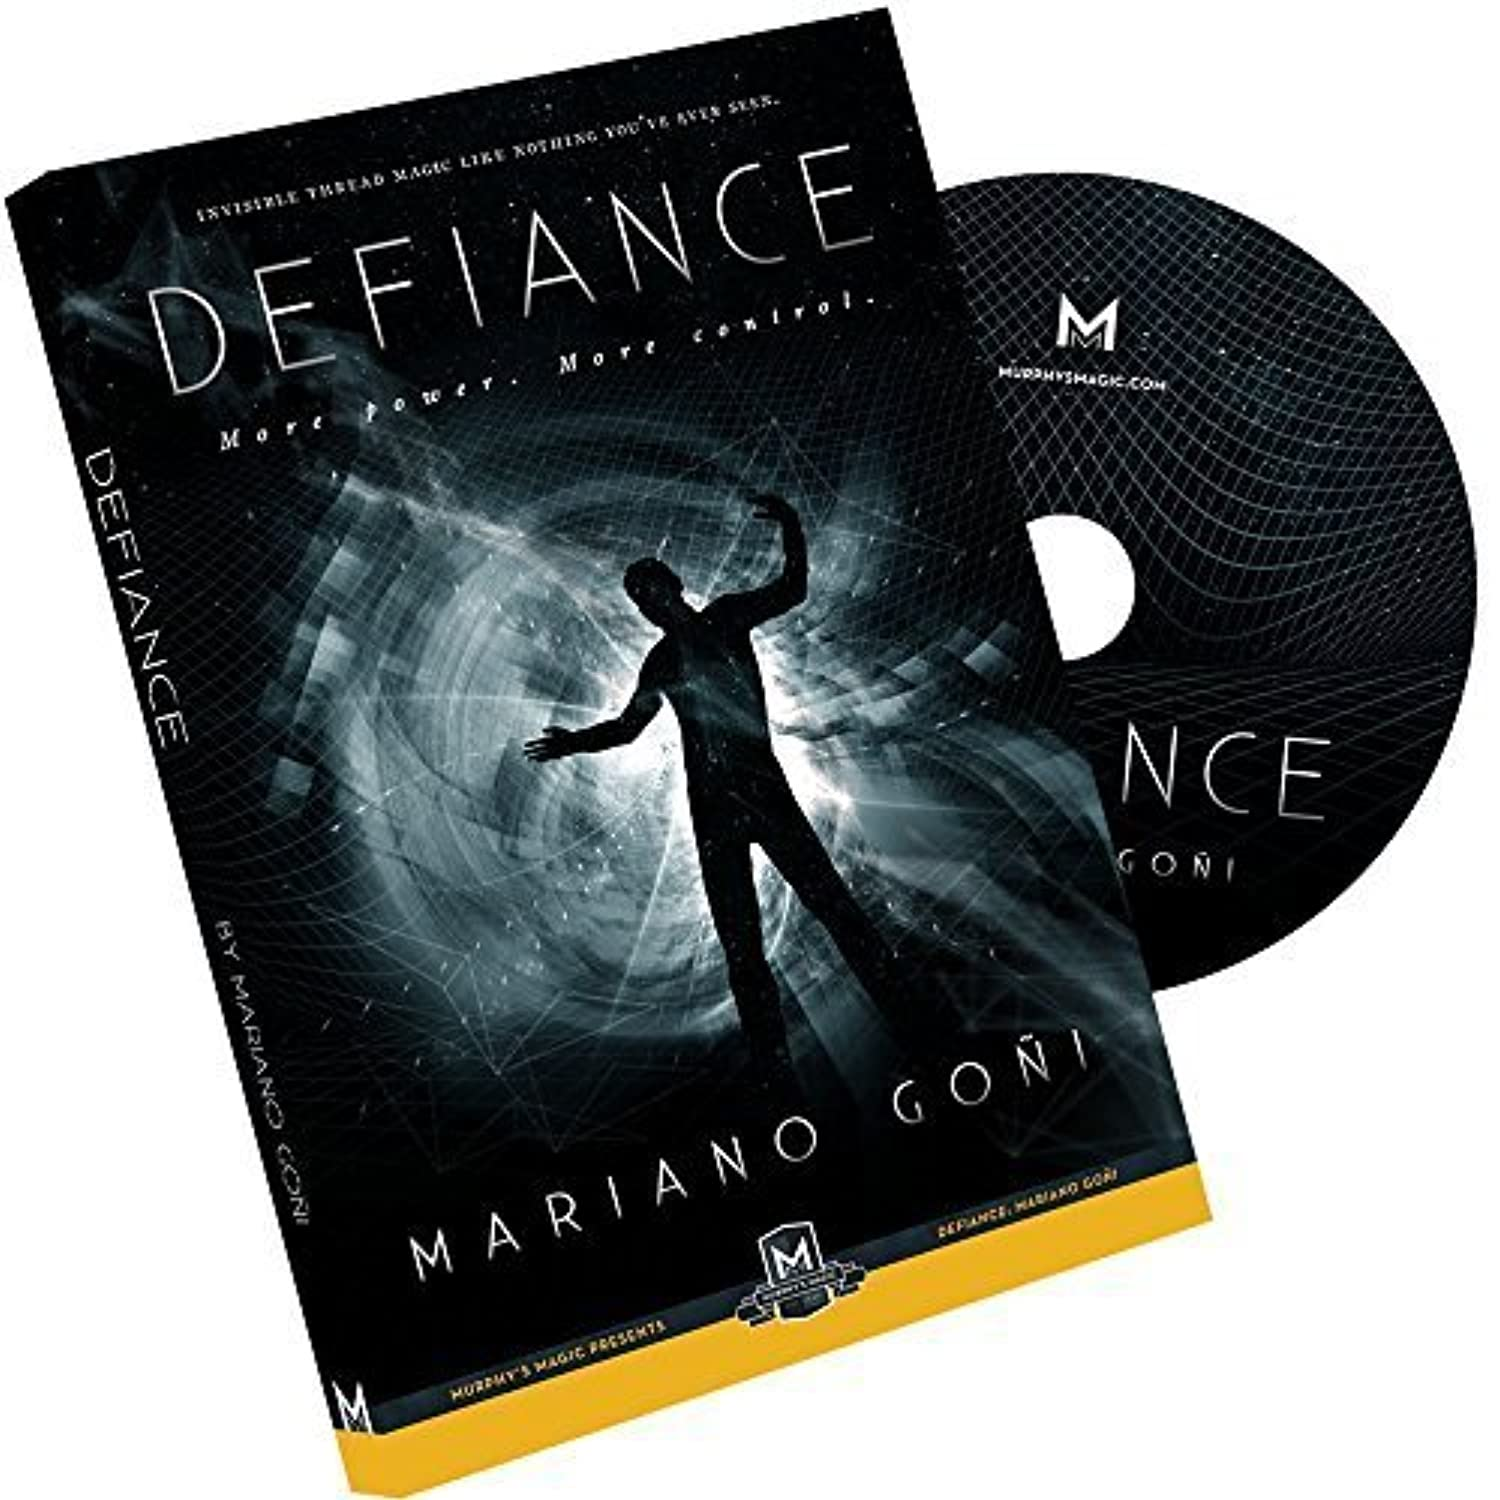 Defiance (DVD with Gimmick) - Mariano Goni - DVD by Murphy's Magic Supplies Inc. [並行輸入品]